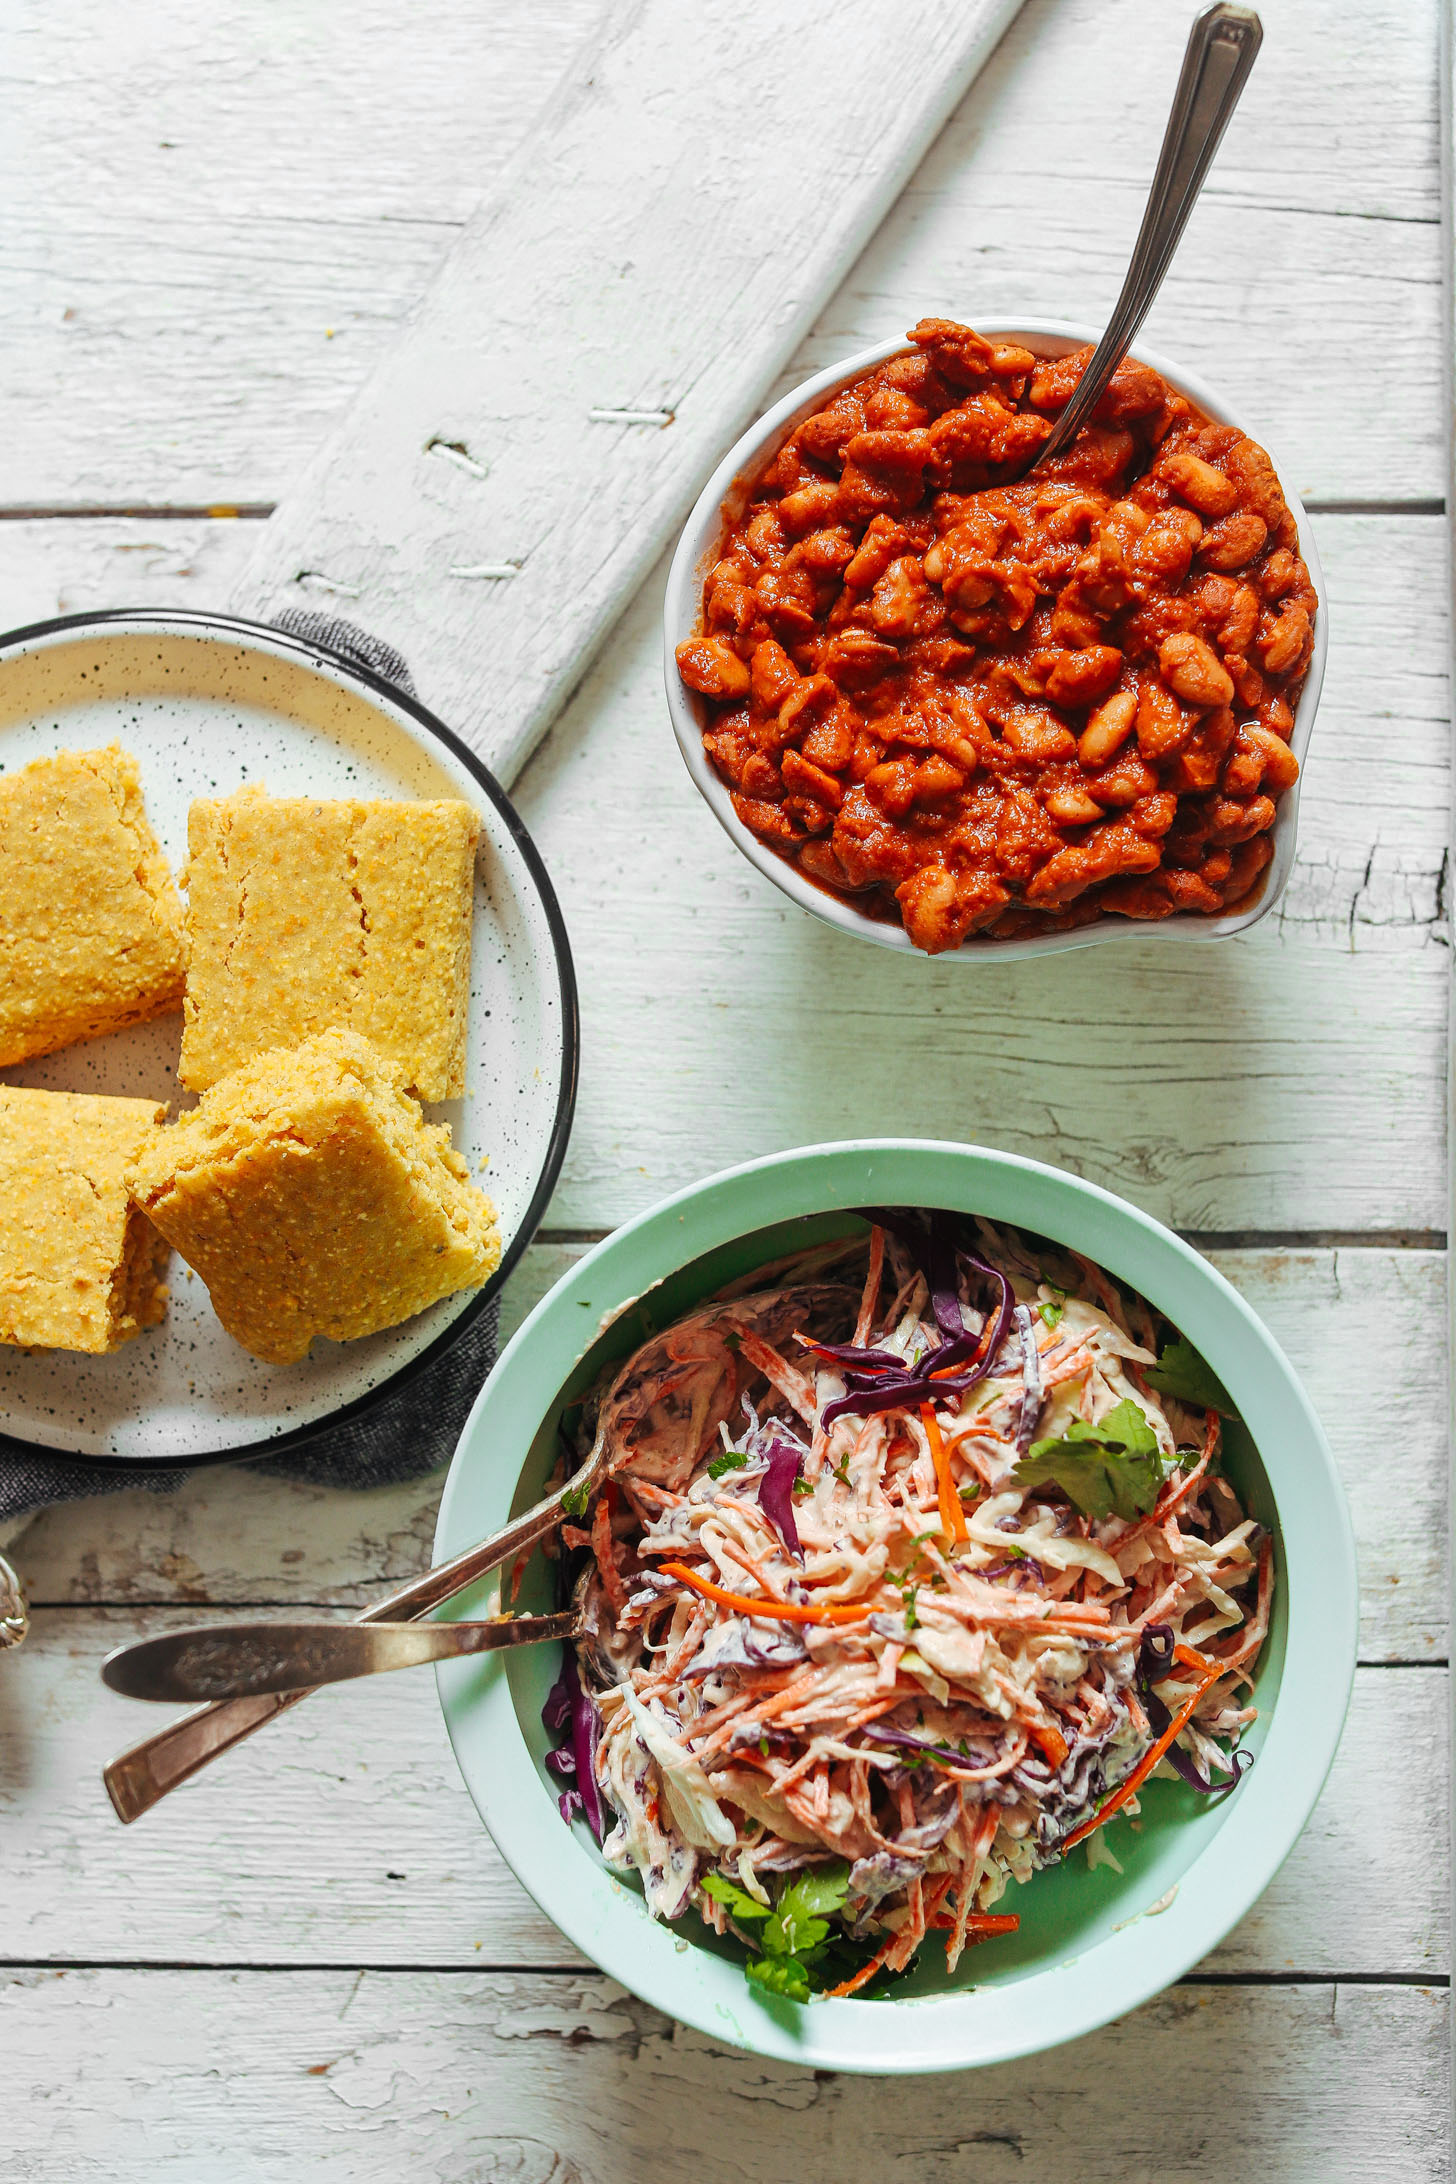 Baked Beans, Cornbread, and Coleslaw for making delicious vegan BBQ Bowls